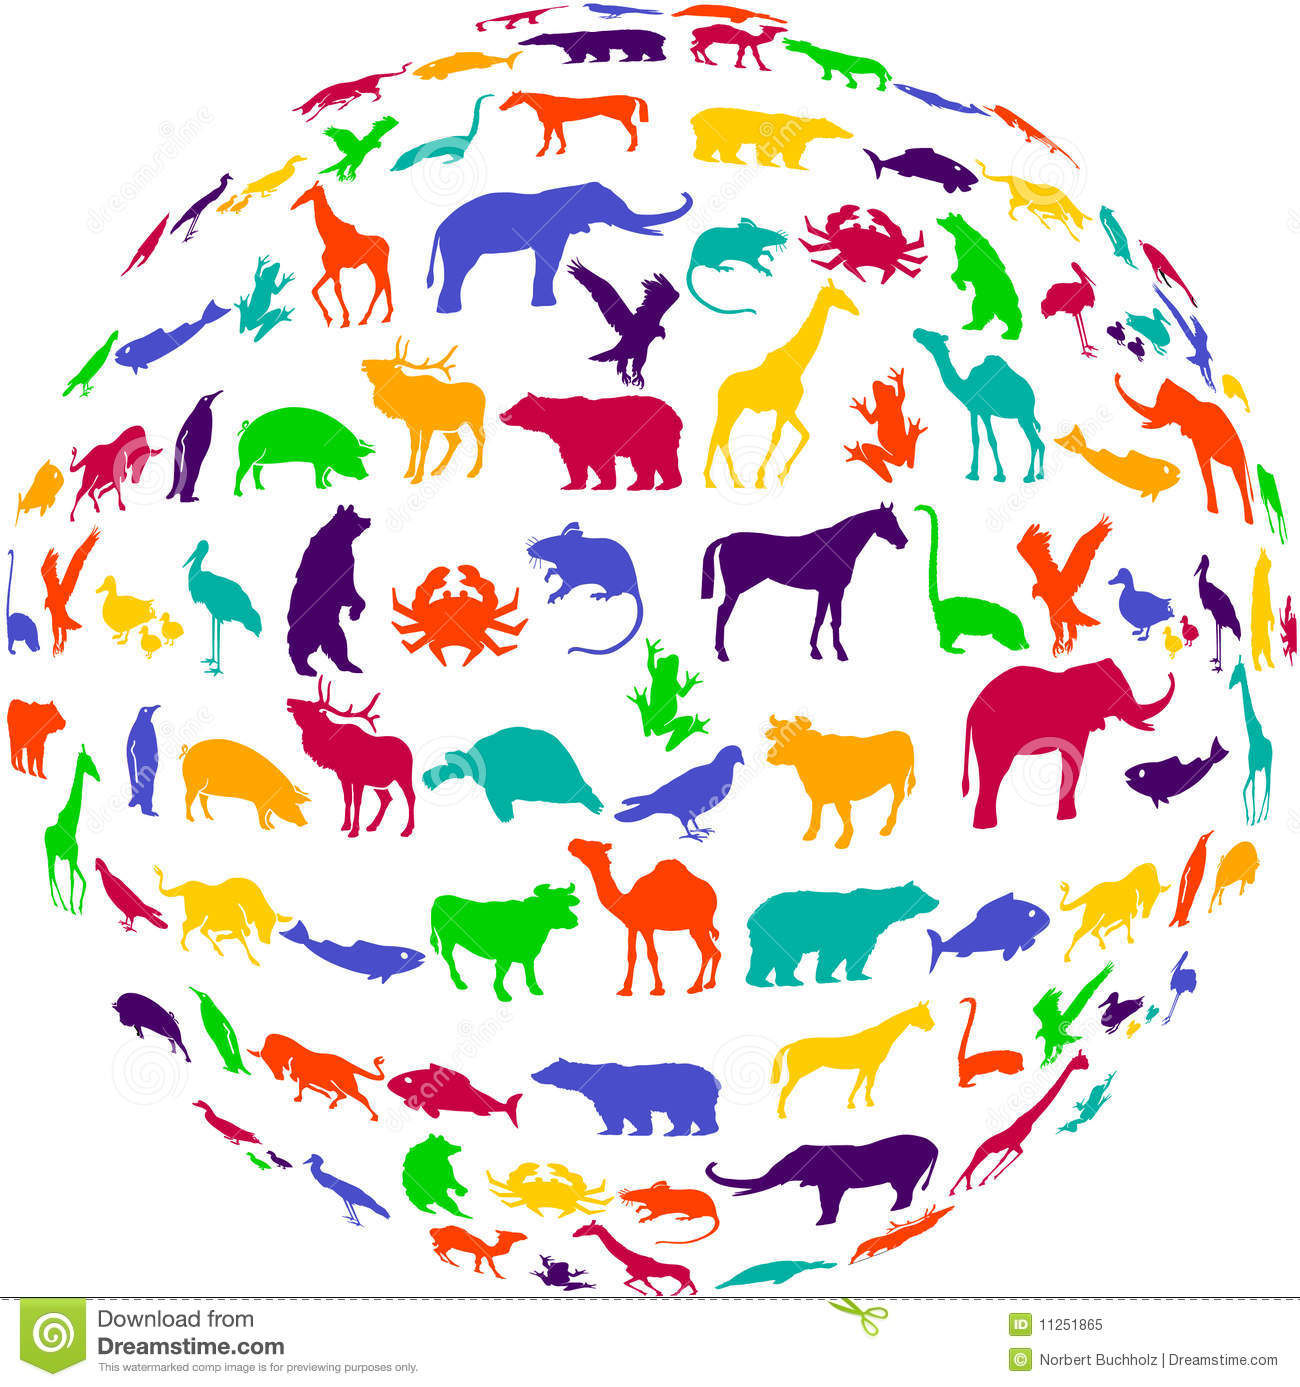 Potpourri Animal Kingdom Royalty Free Stock Photo - Image ...